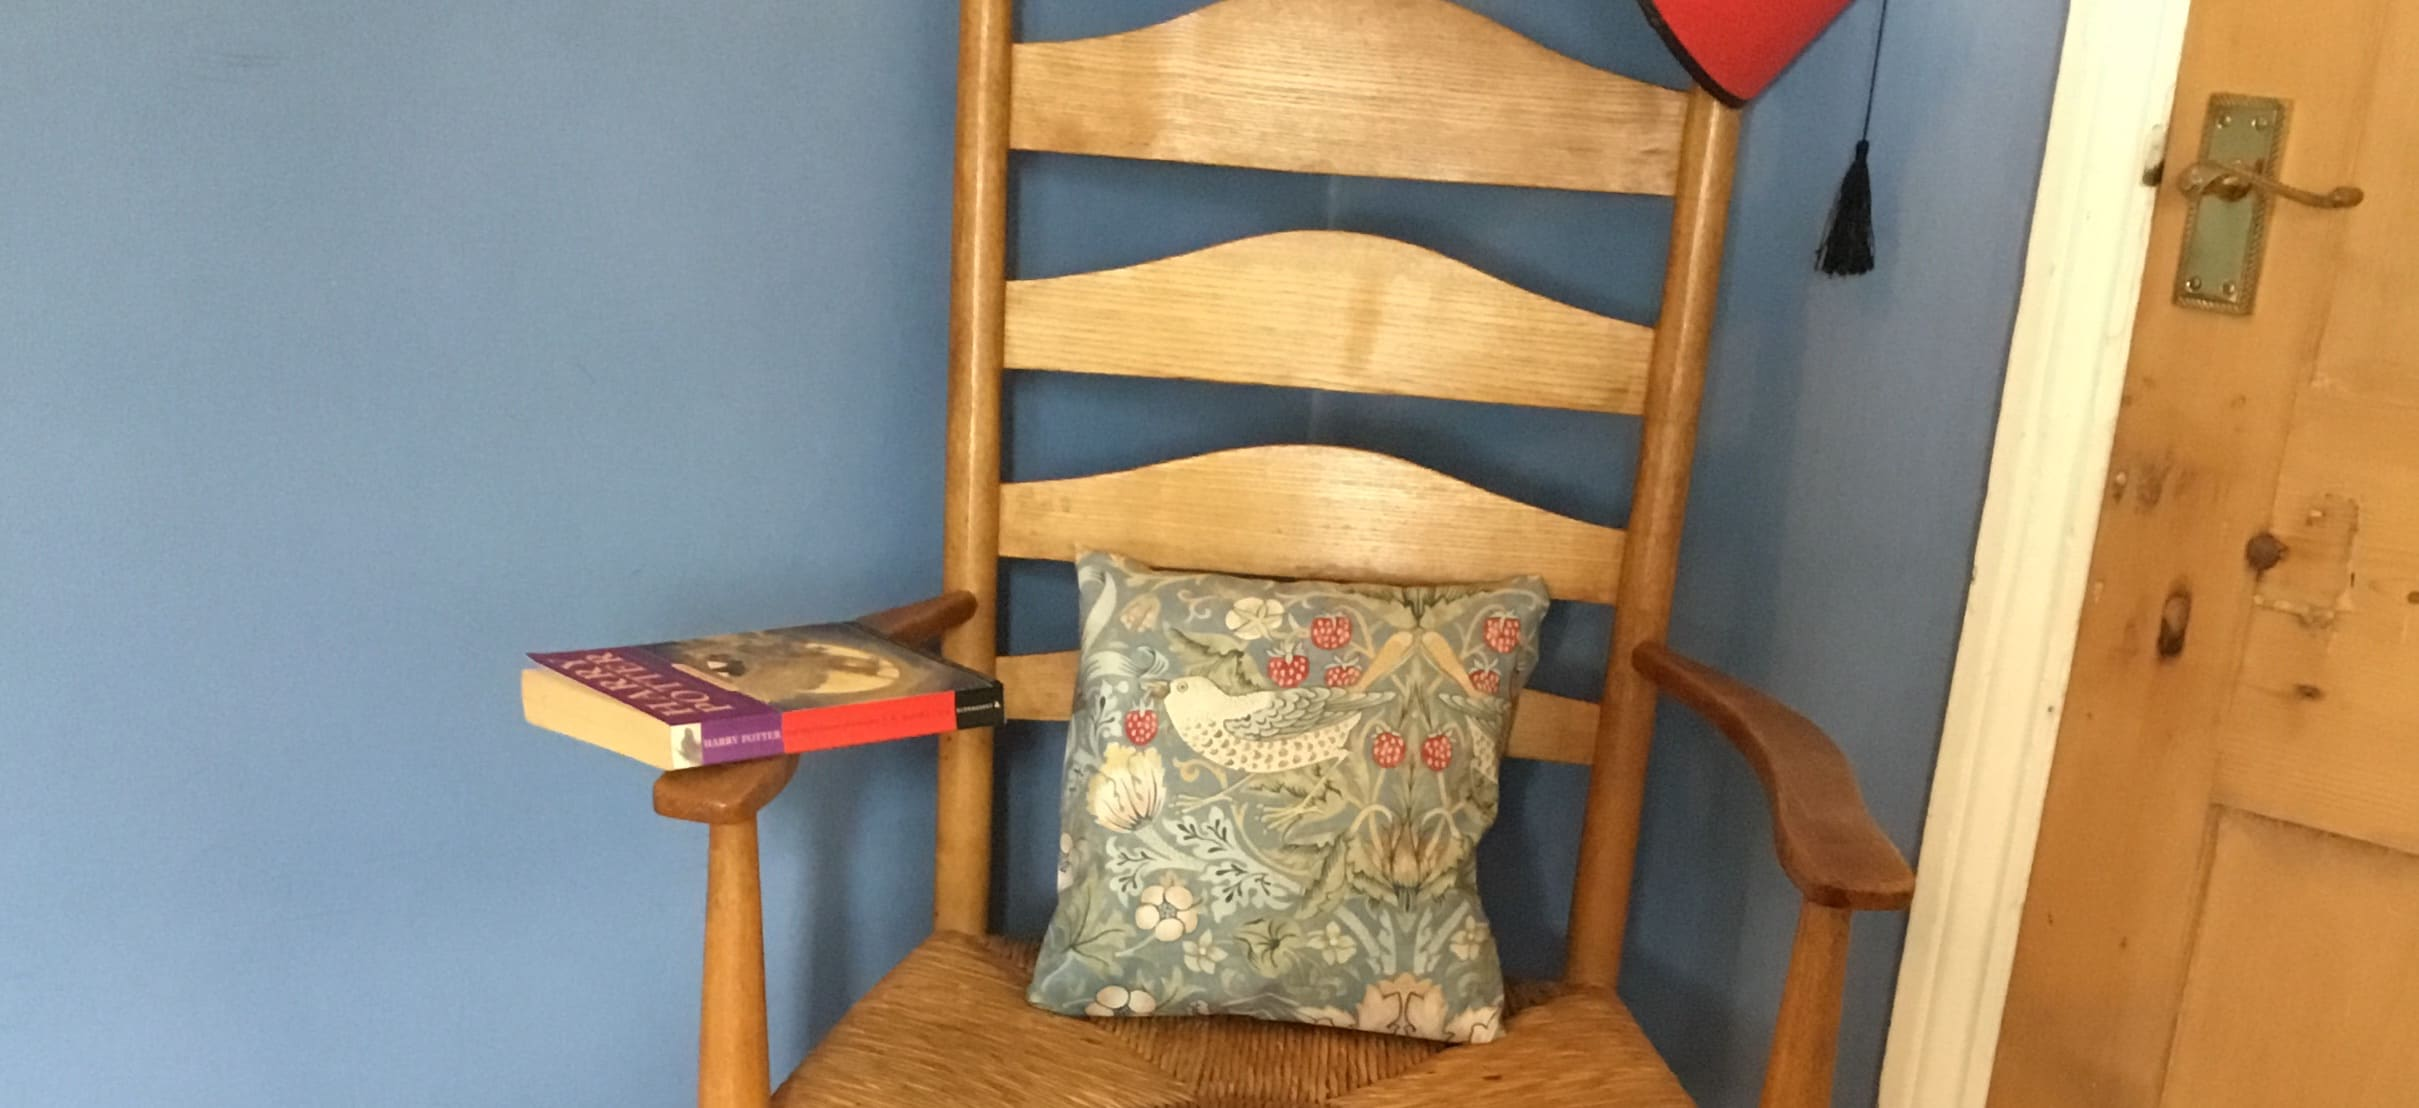 Farrow and Ball in a reading corner